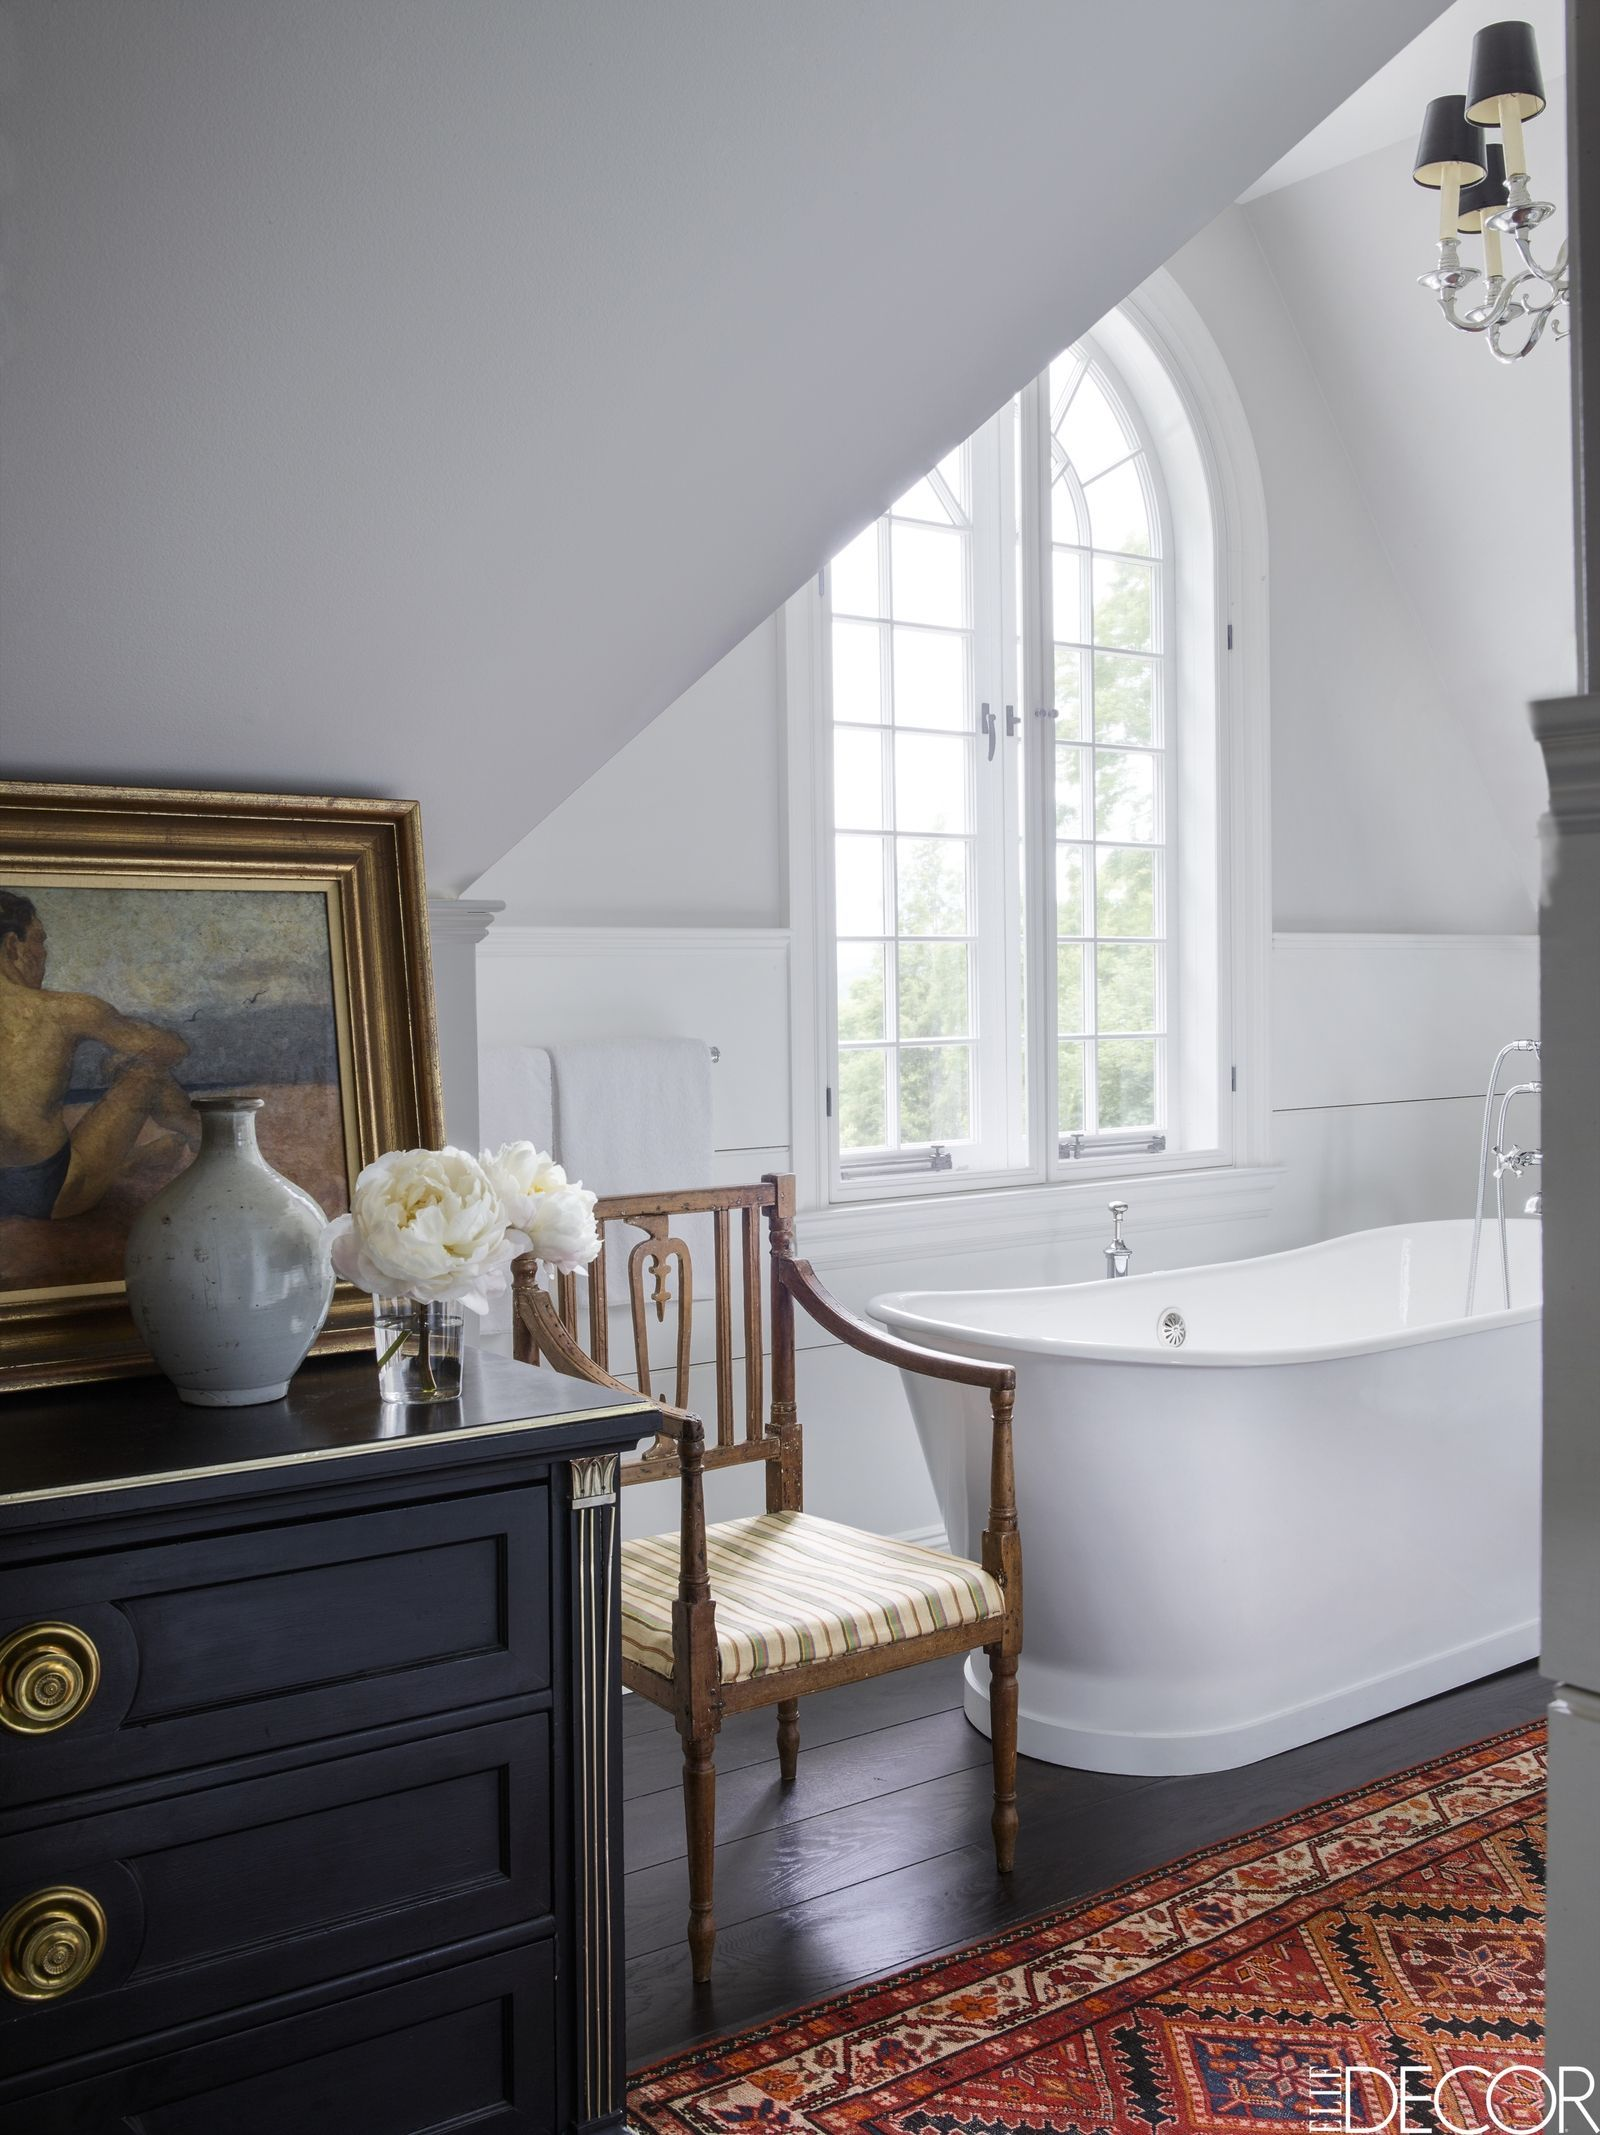 House tour a showroom ownerus connecticut cottage is a study in